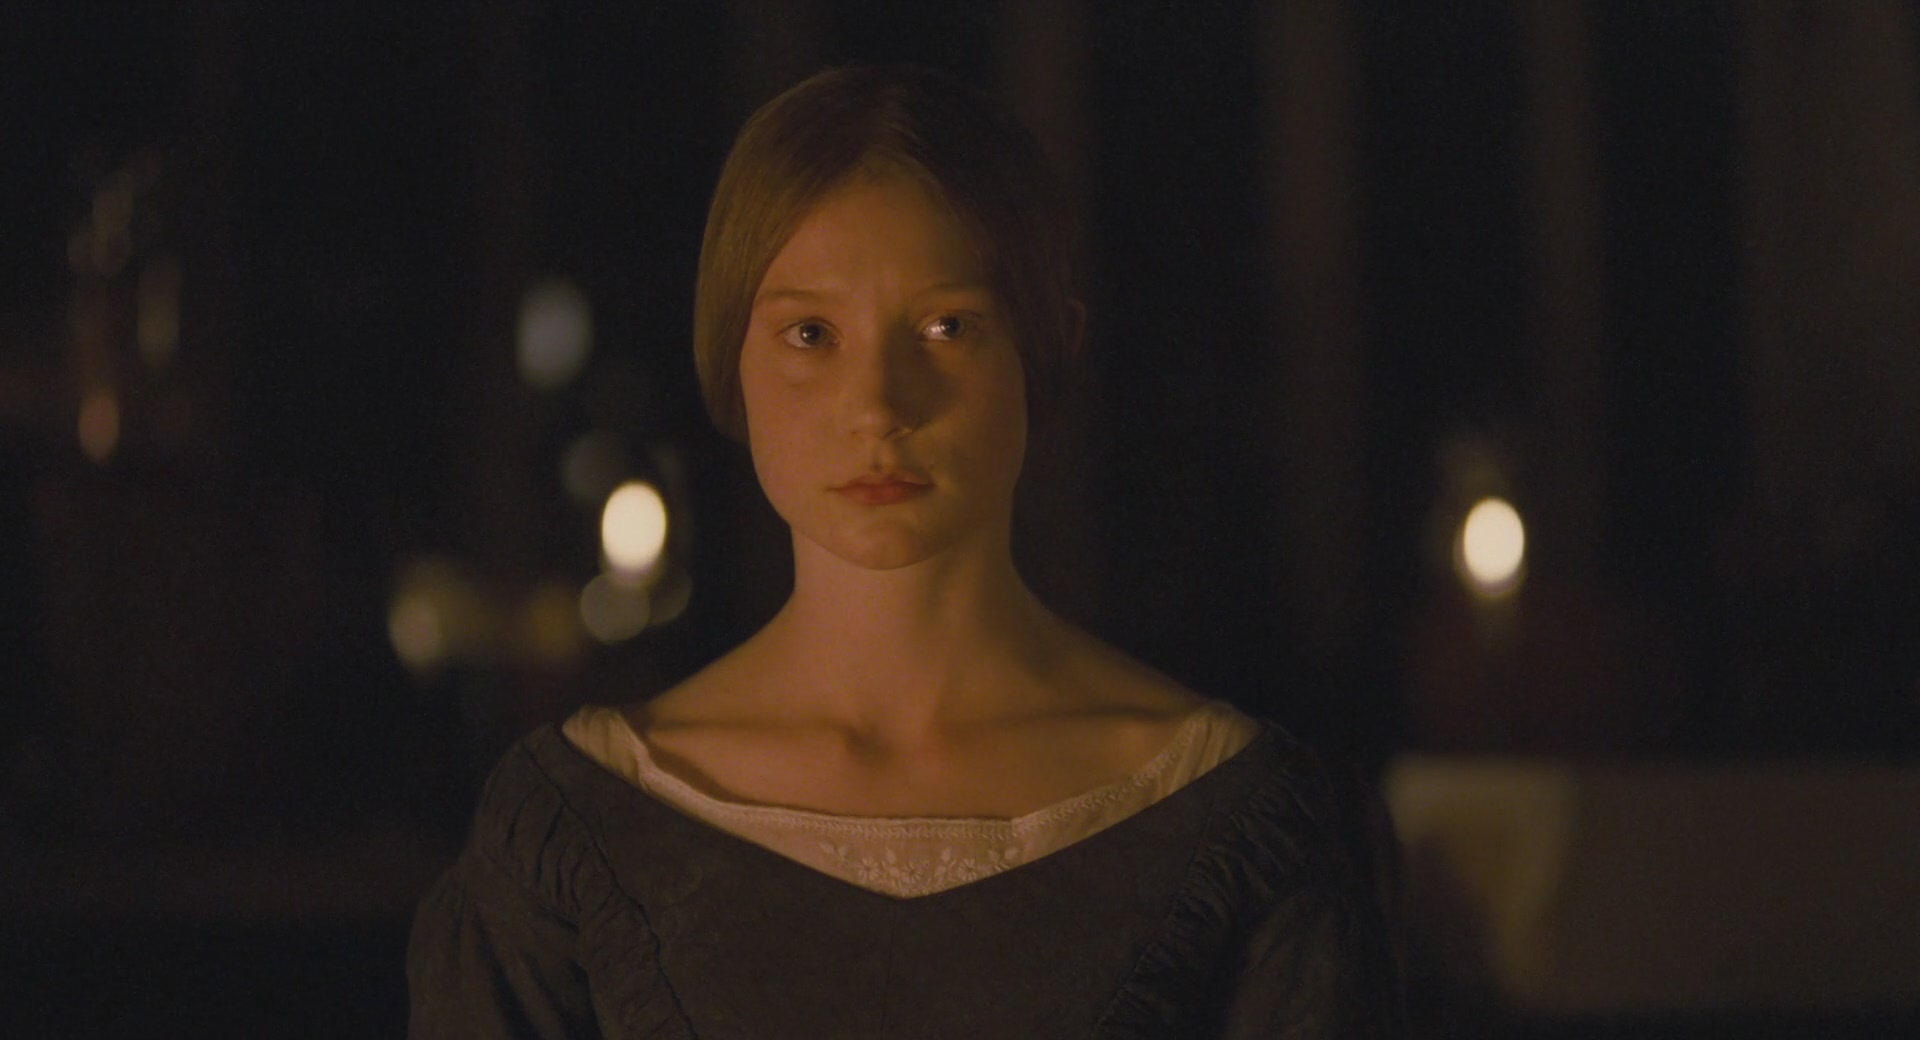 an analysis of the character of adele in jane eyre by charlotte bronte